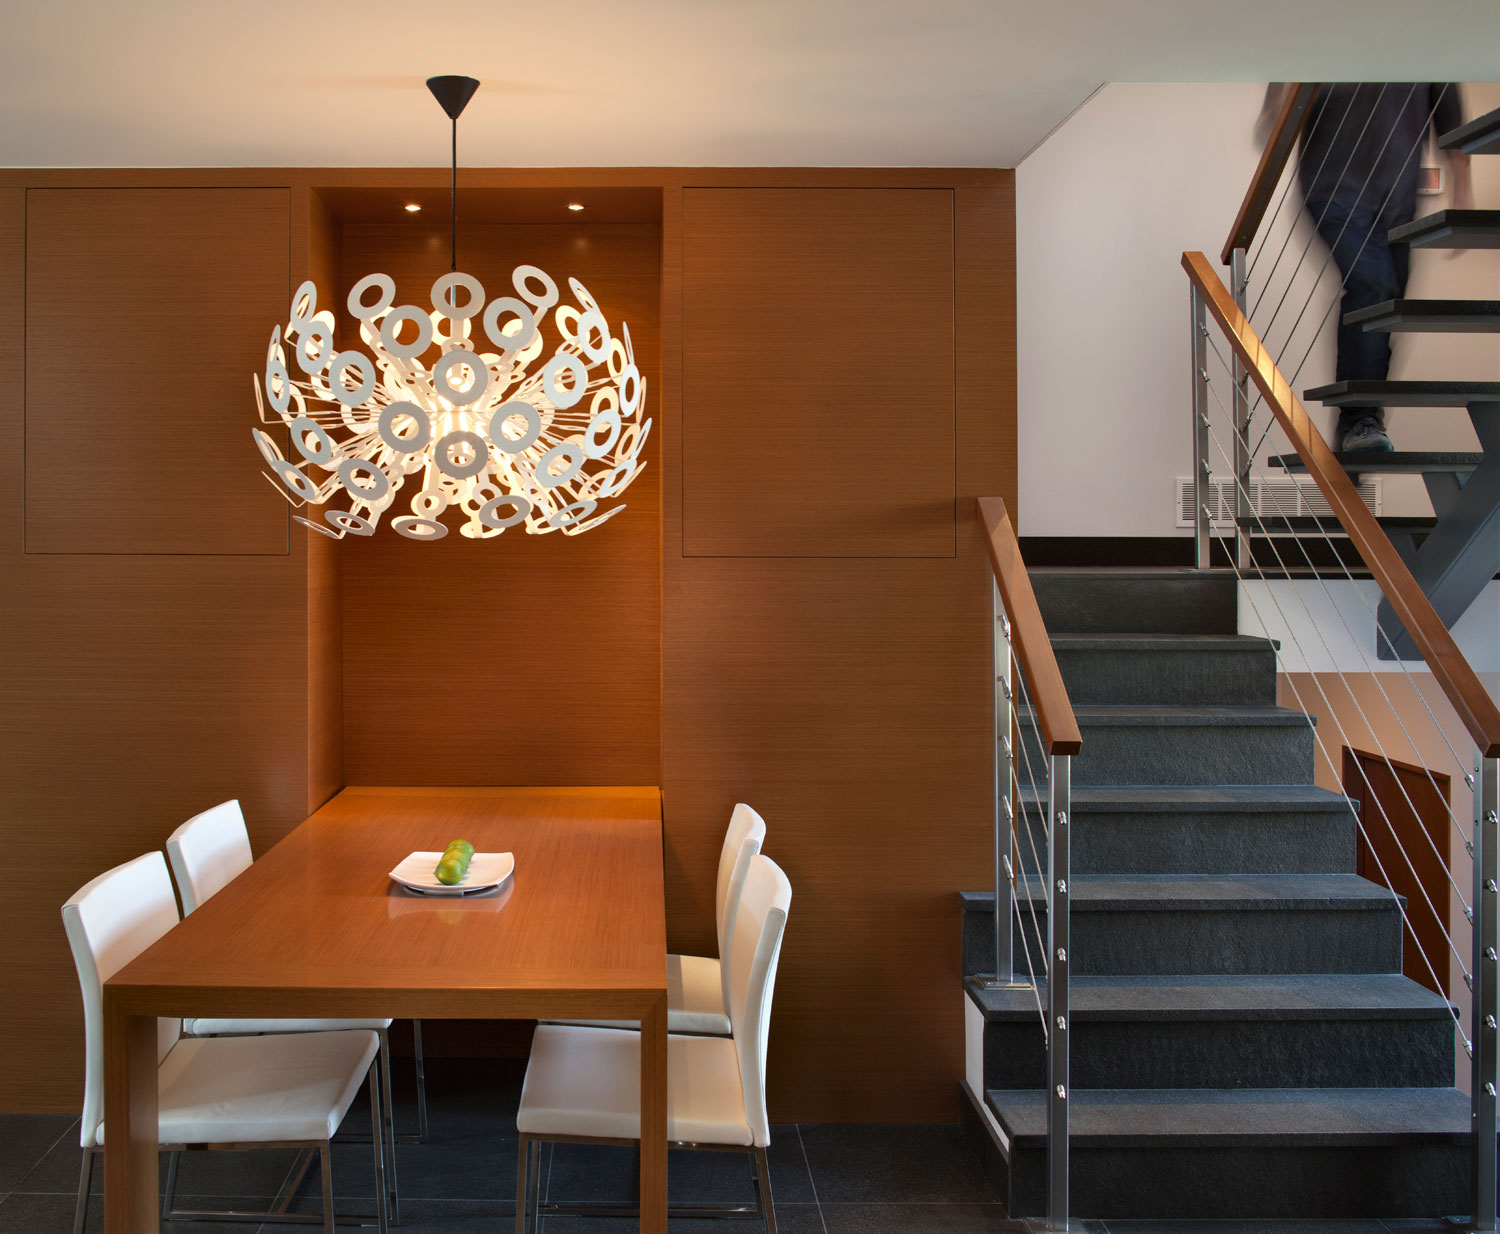 Simple Dining Area And Furniture Can Look Elegant By Adding The Perfect Chandelier